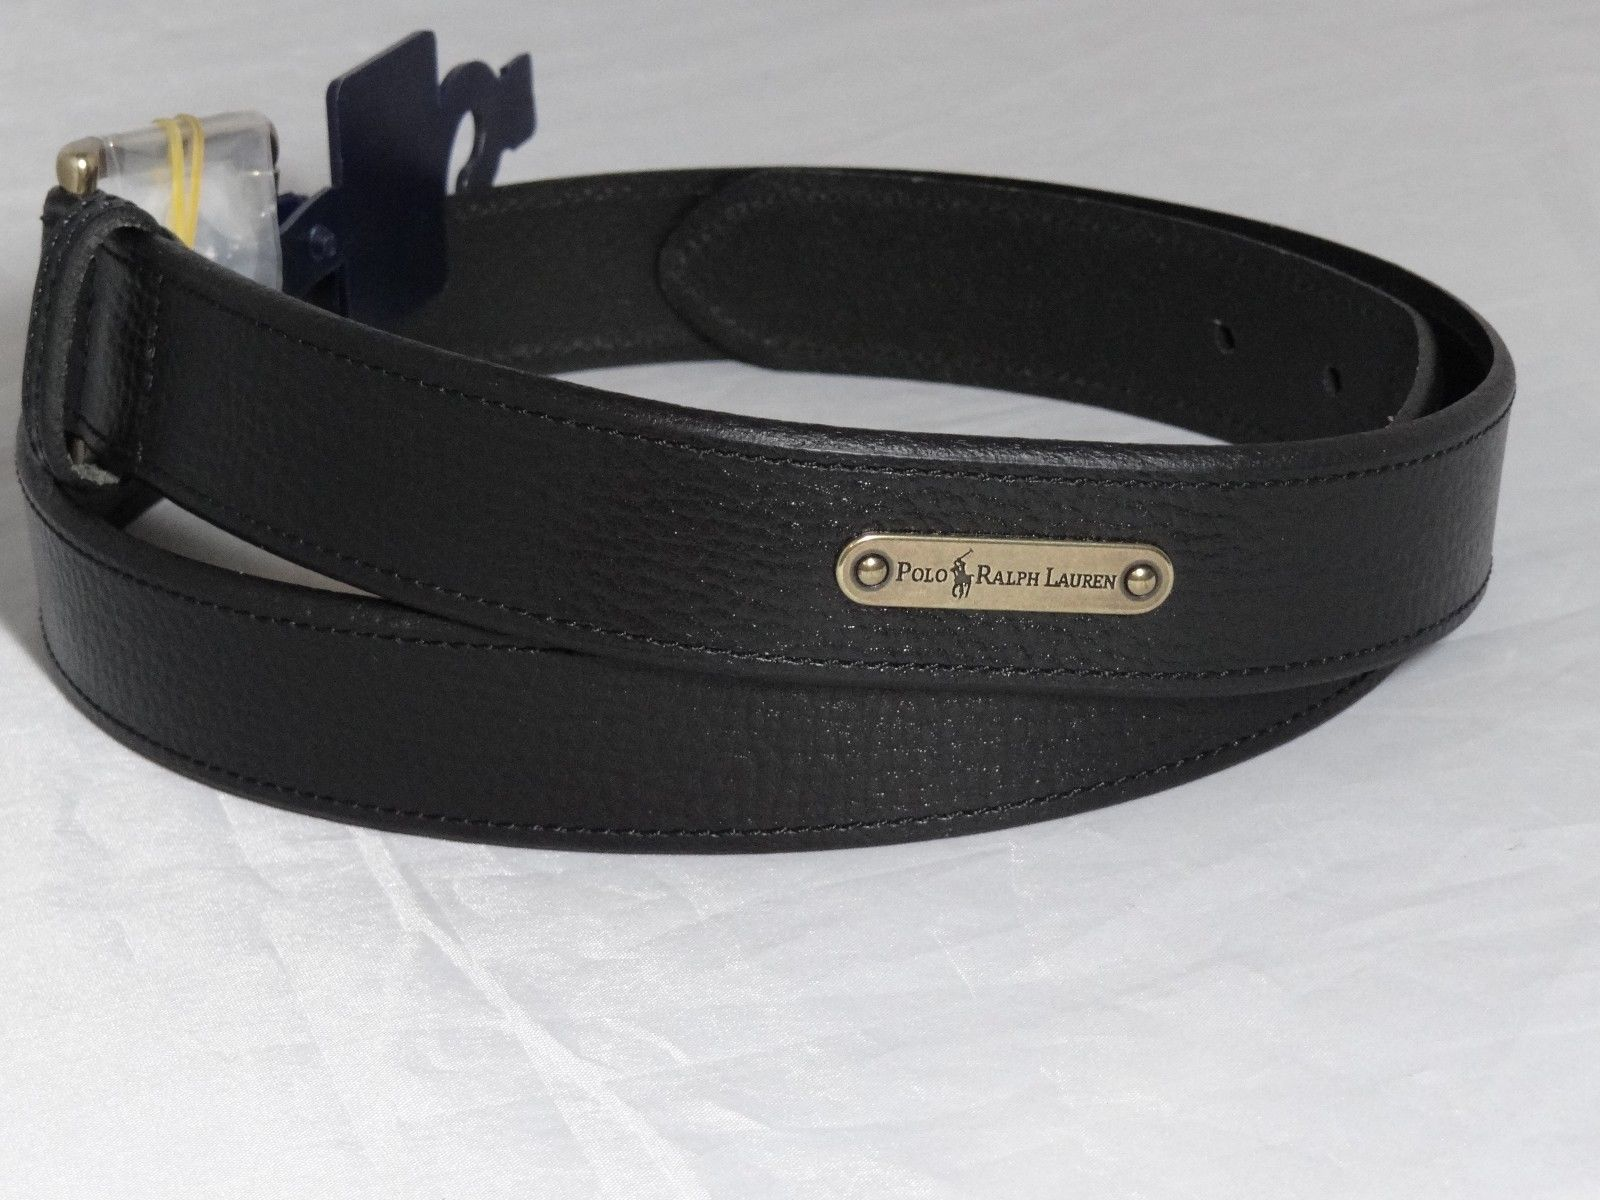 Polo Belt With Logos